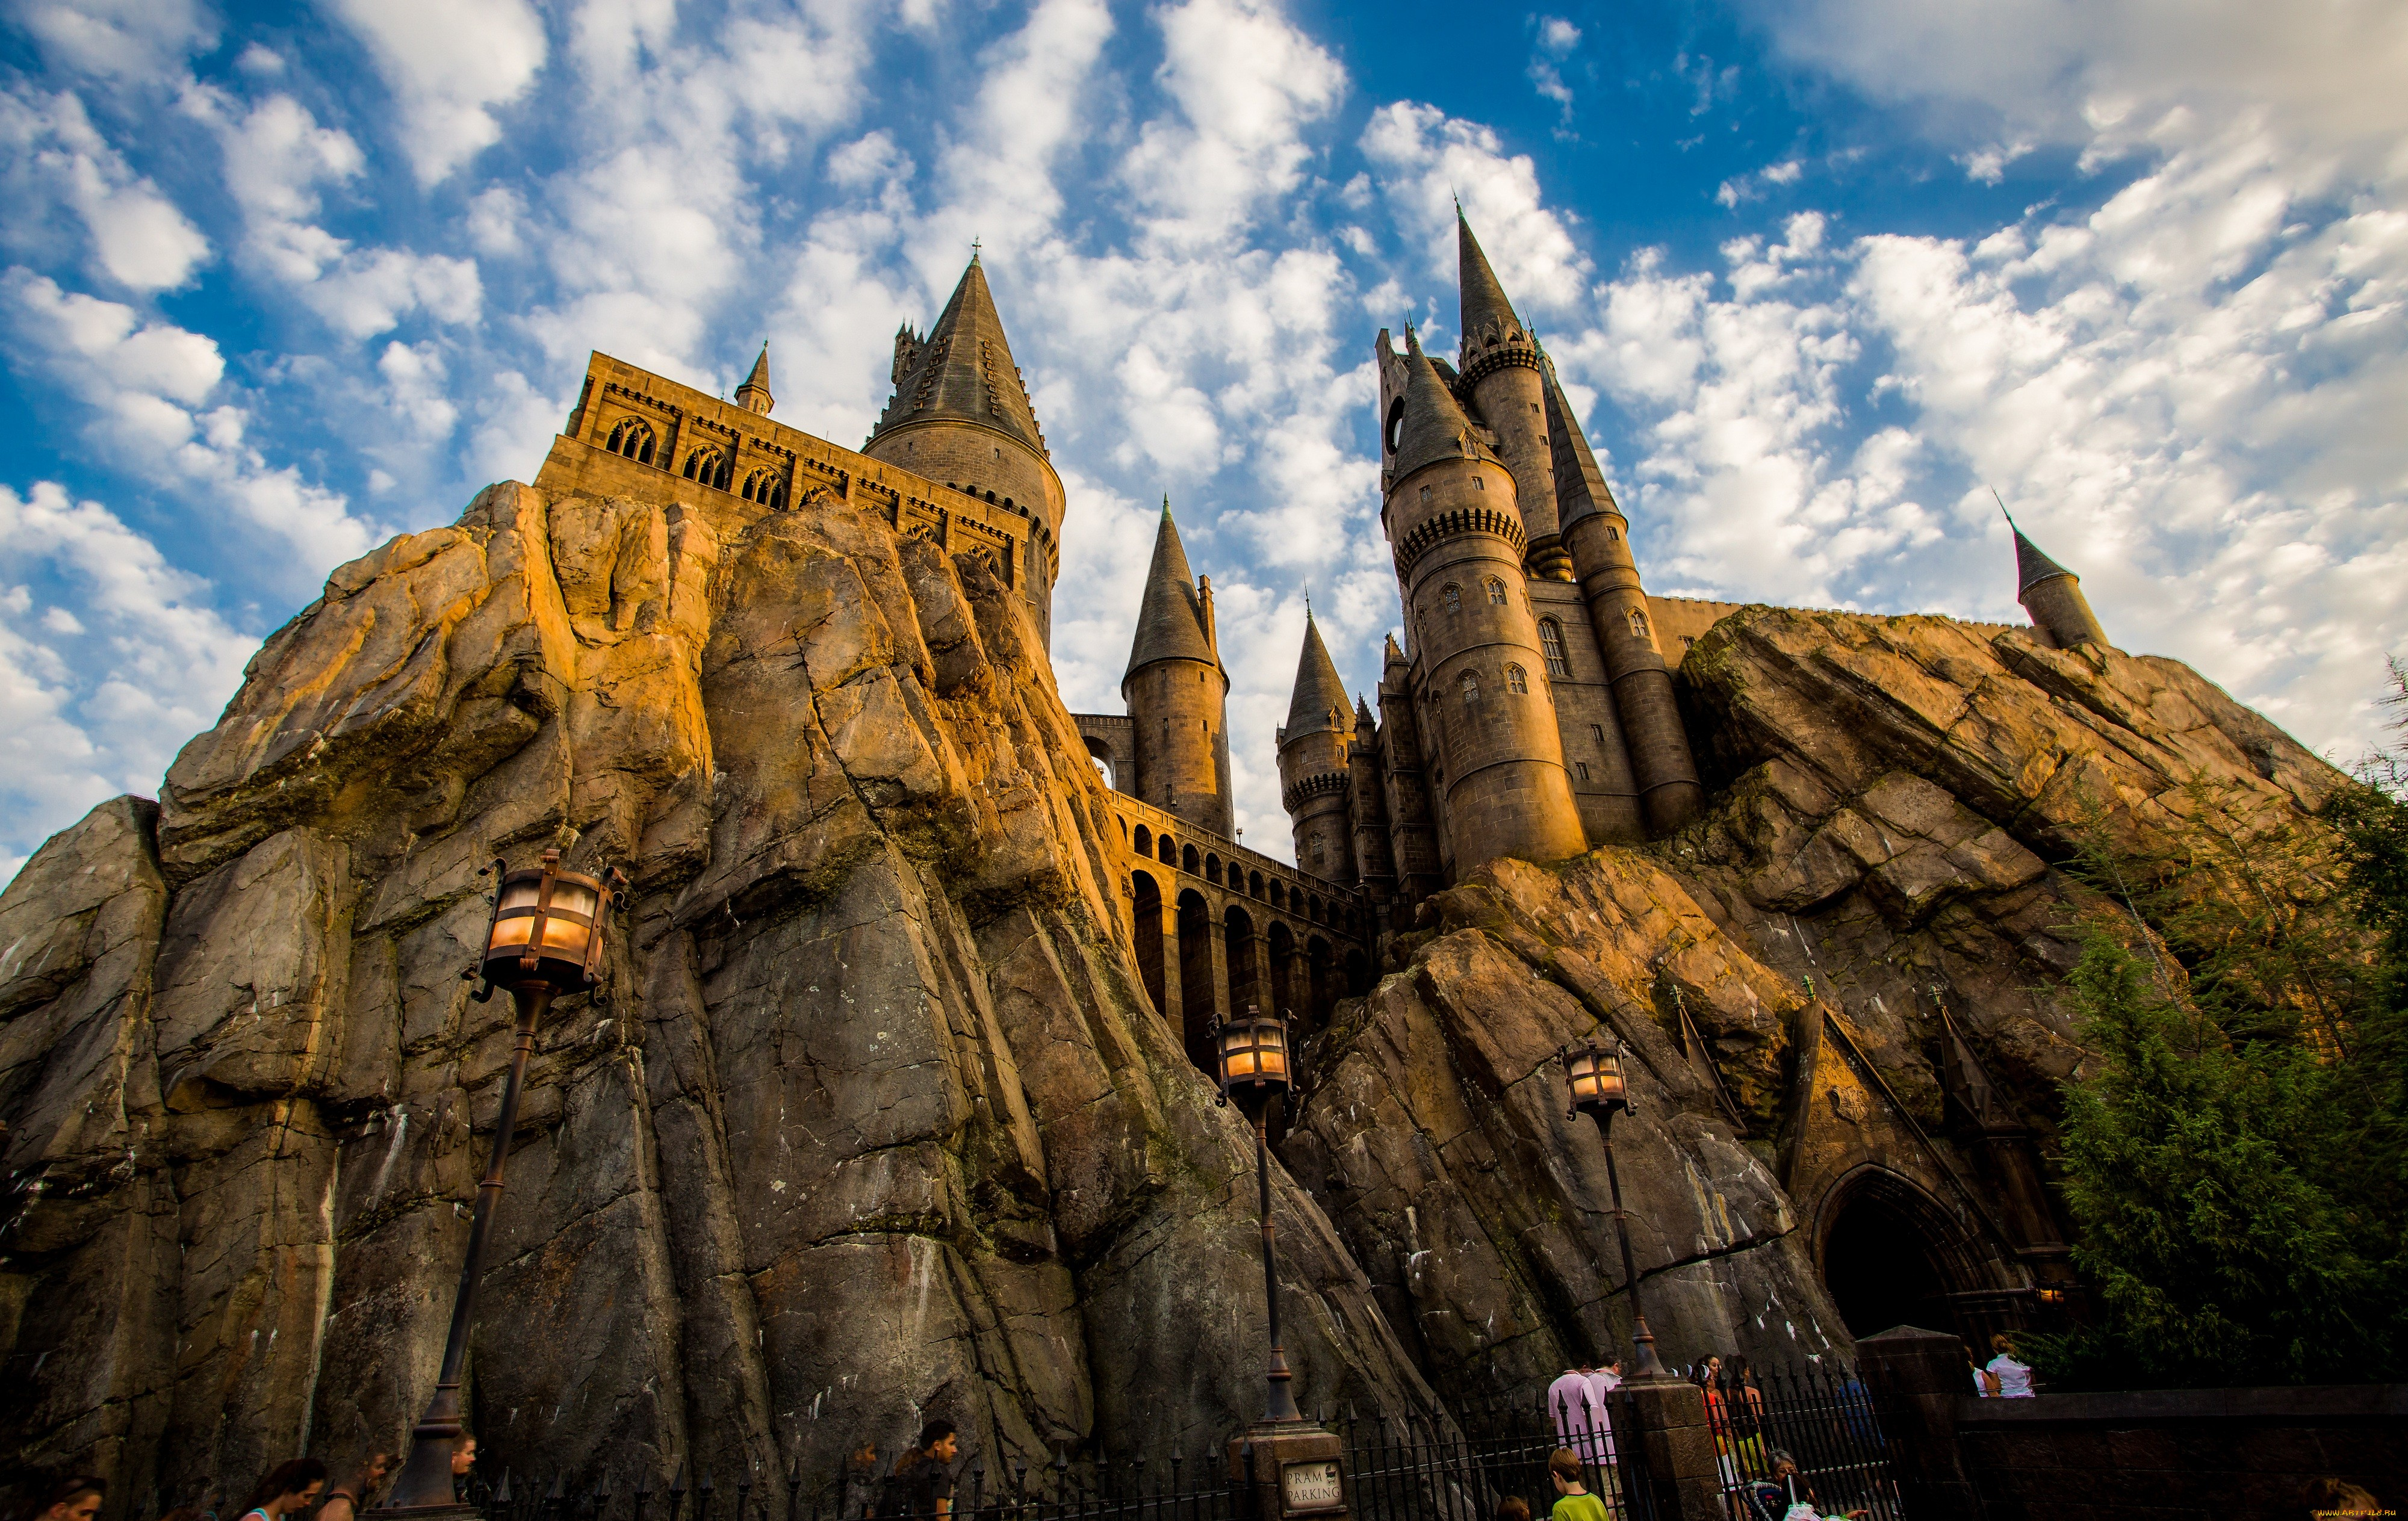 Universal's Islands of Adventure is a theme park in Orlando, Florida.